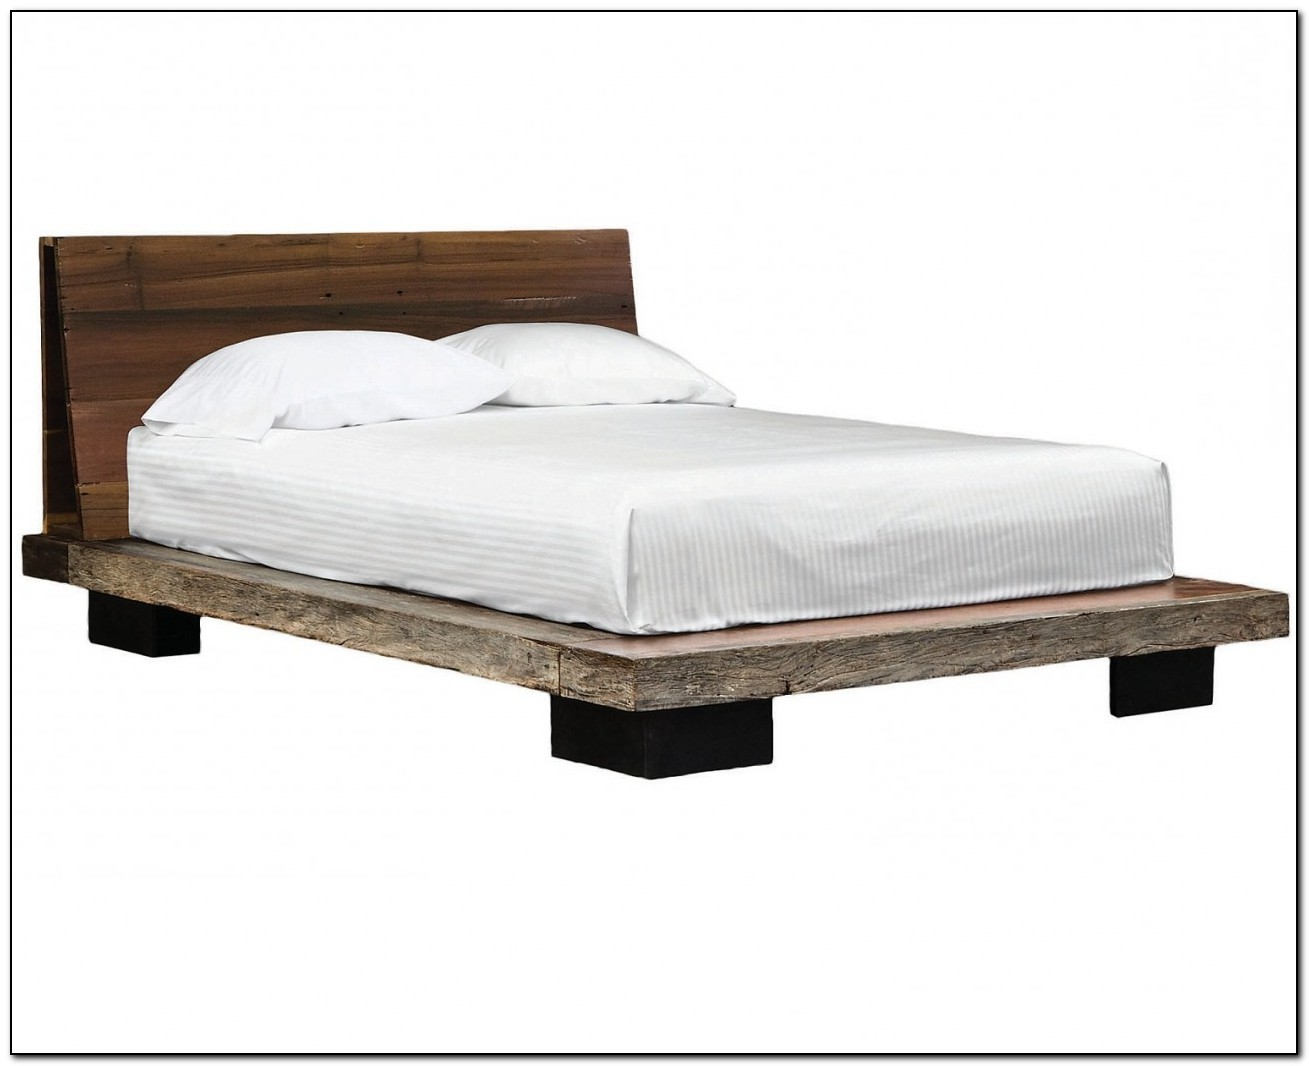 Wood Platform Bed Frame Queen - Beds : Home Design Ideas # ...